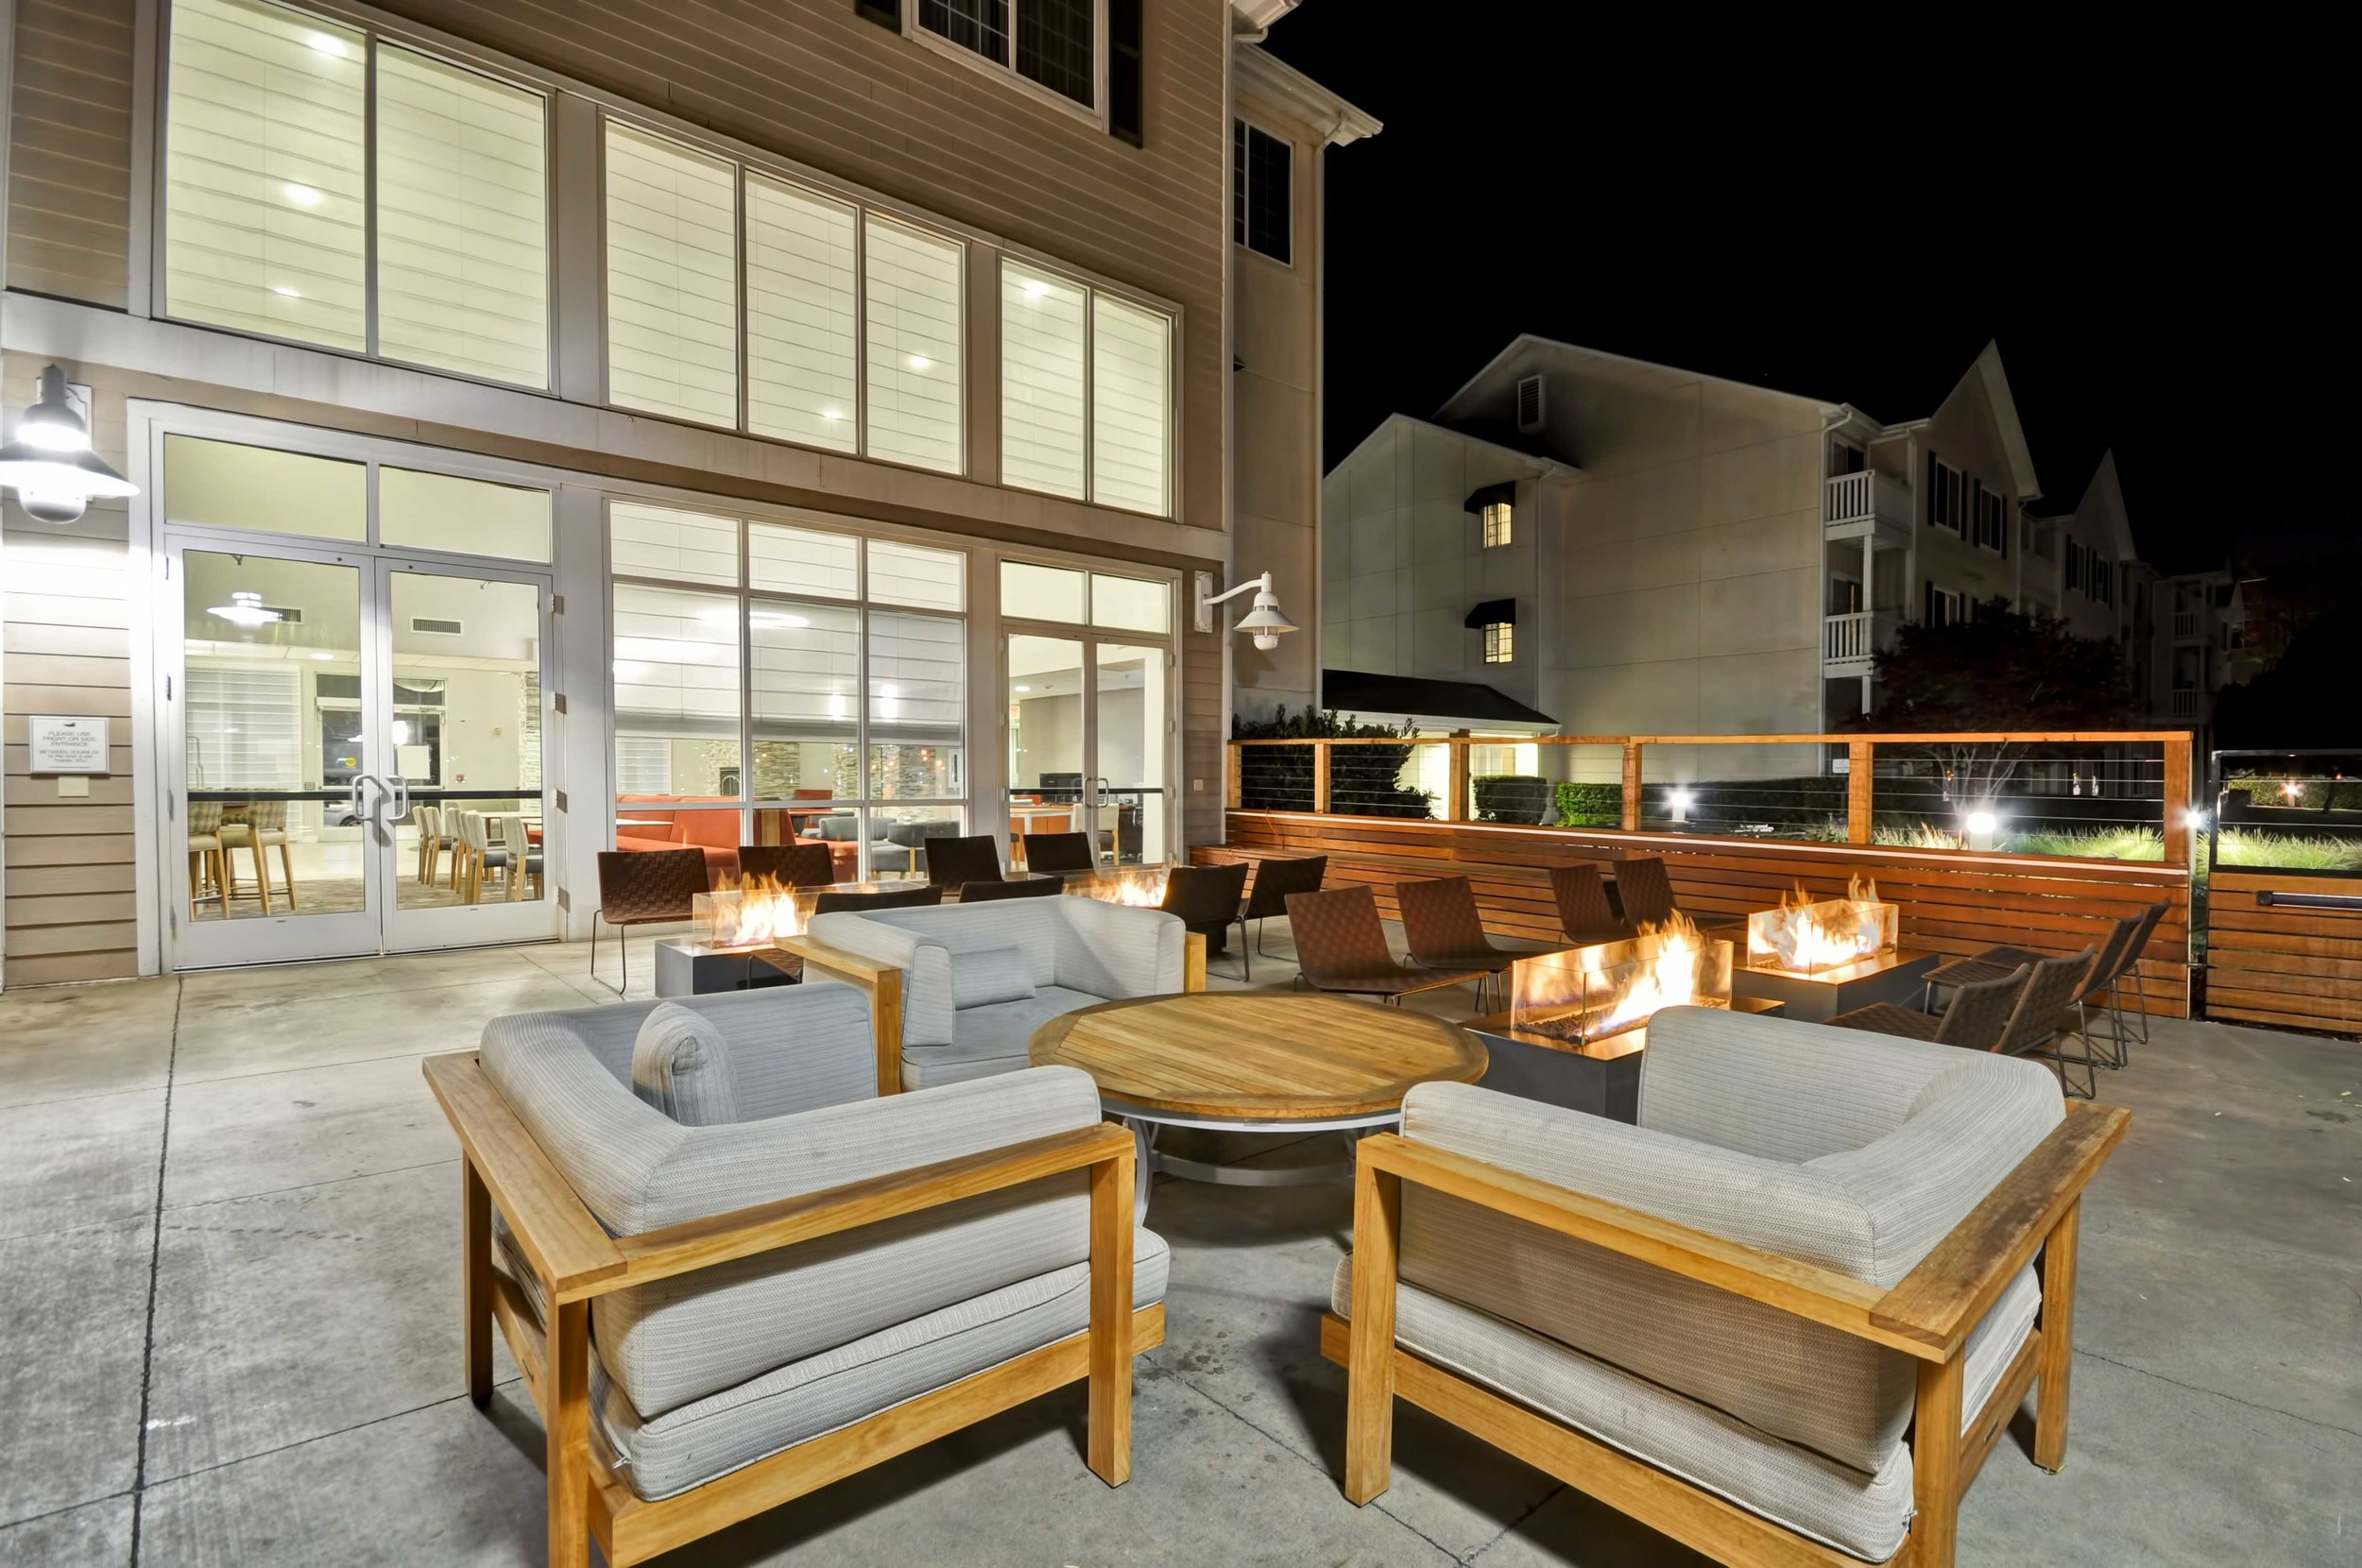 12-Homewood-Suites-Oakland-Outdoor-Patio-PM.jpg